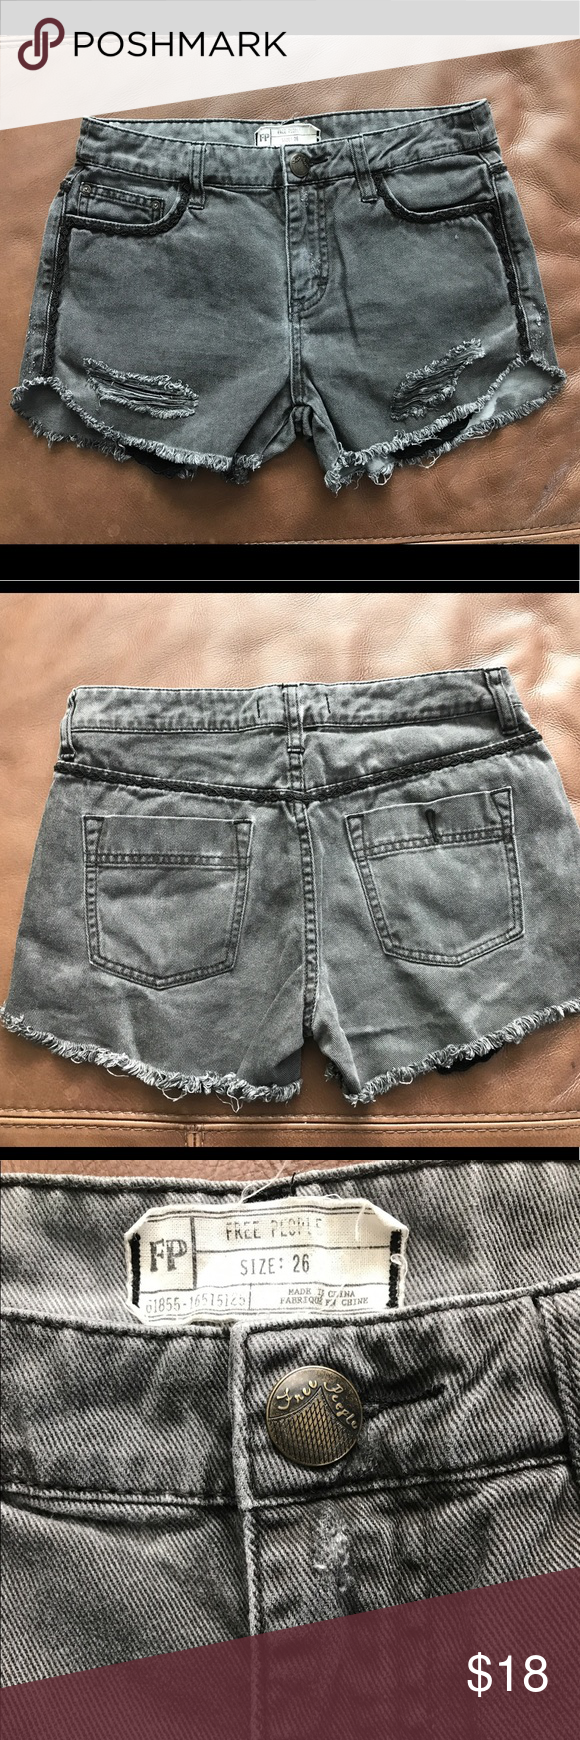 Free People Black Gray Denim Shorts size 26 Pre-loved distressed black, gray Free People shorts size 26 with embroidered detailing.   Please ask if you have any questions. 😀  Home is smoke free 🚭, but we have fur babies 🐰🐶. Free People Shorts Jean Shorts